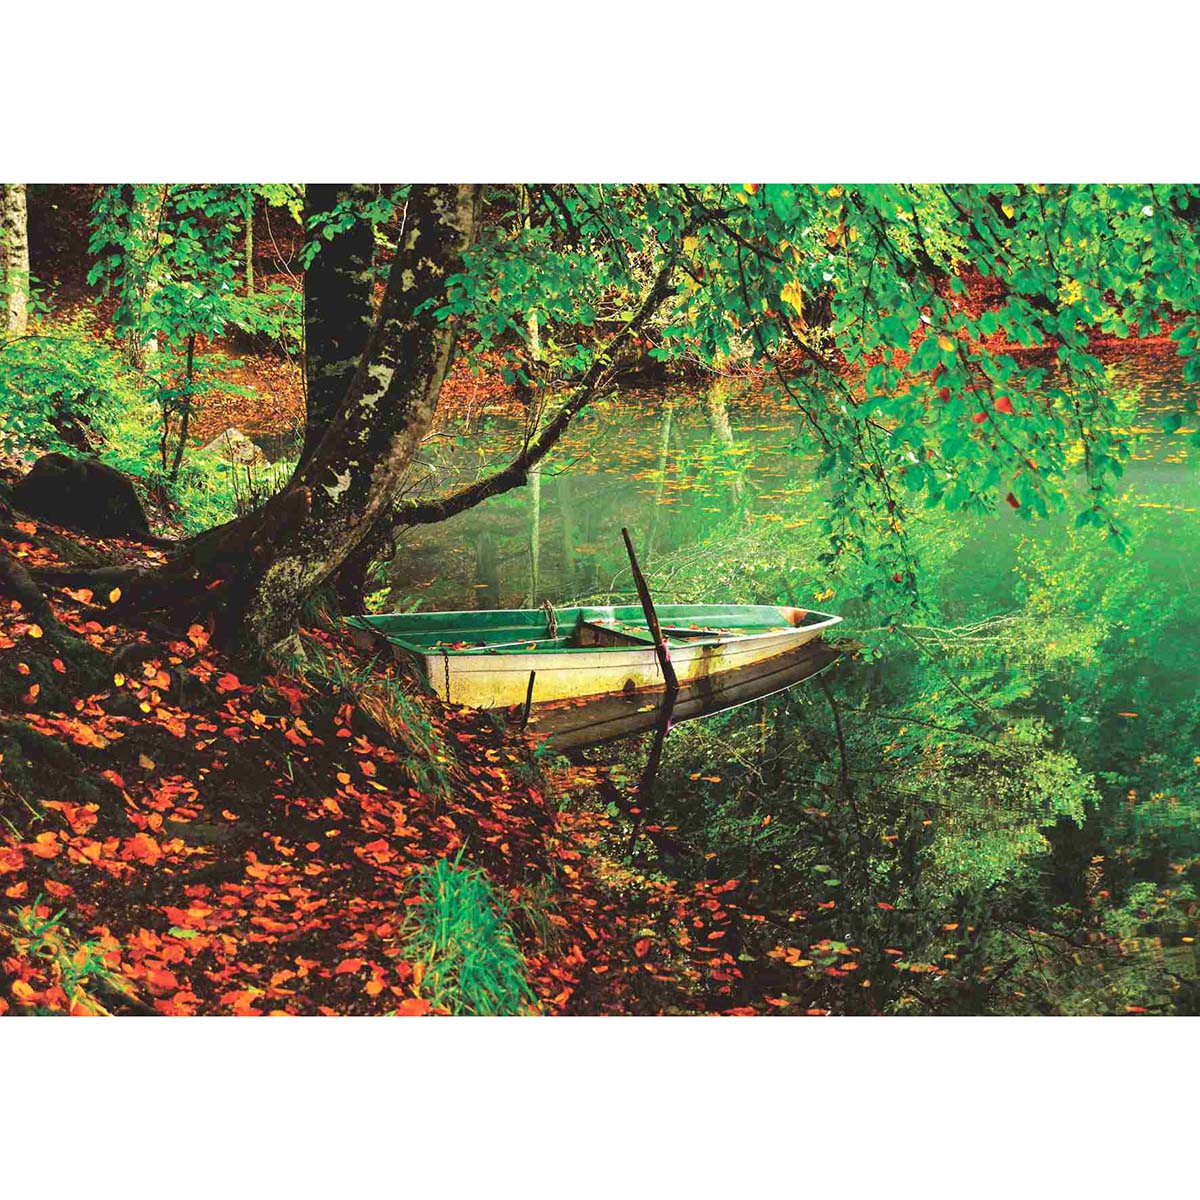 Perre Yedigoller Jigsaw Puzzle